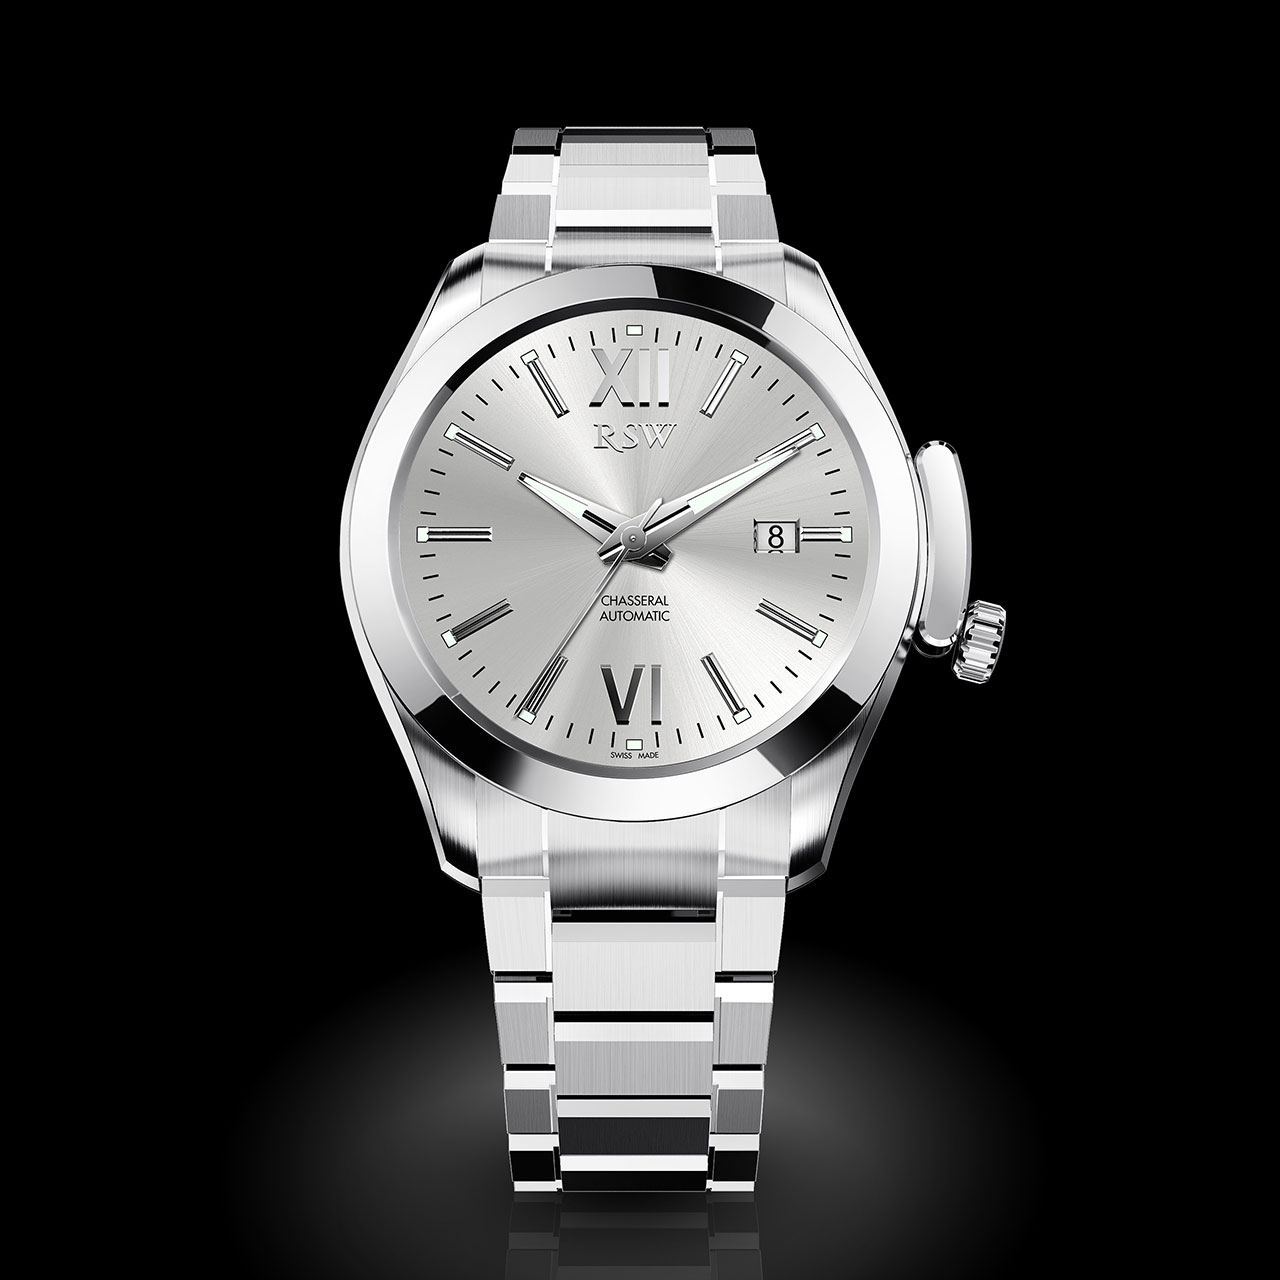 RSW Chasseral Mechanical Watch silver dial